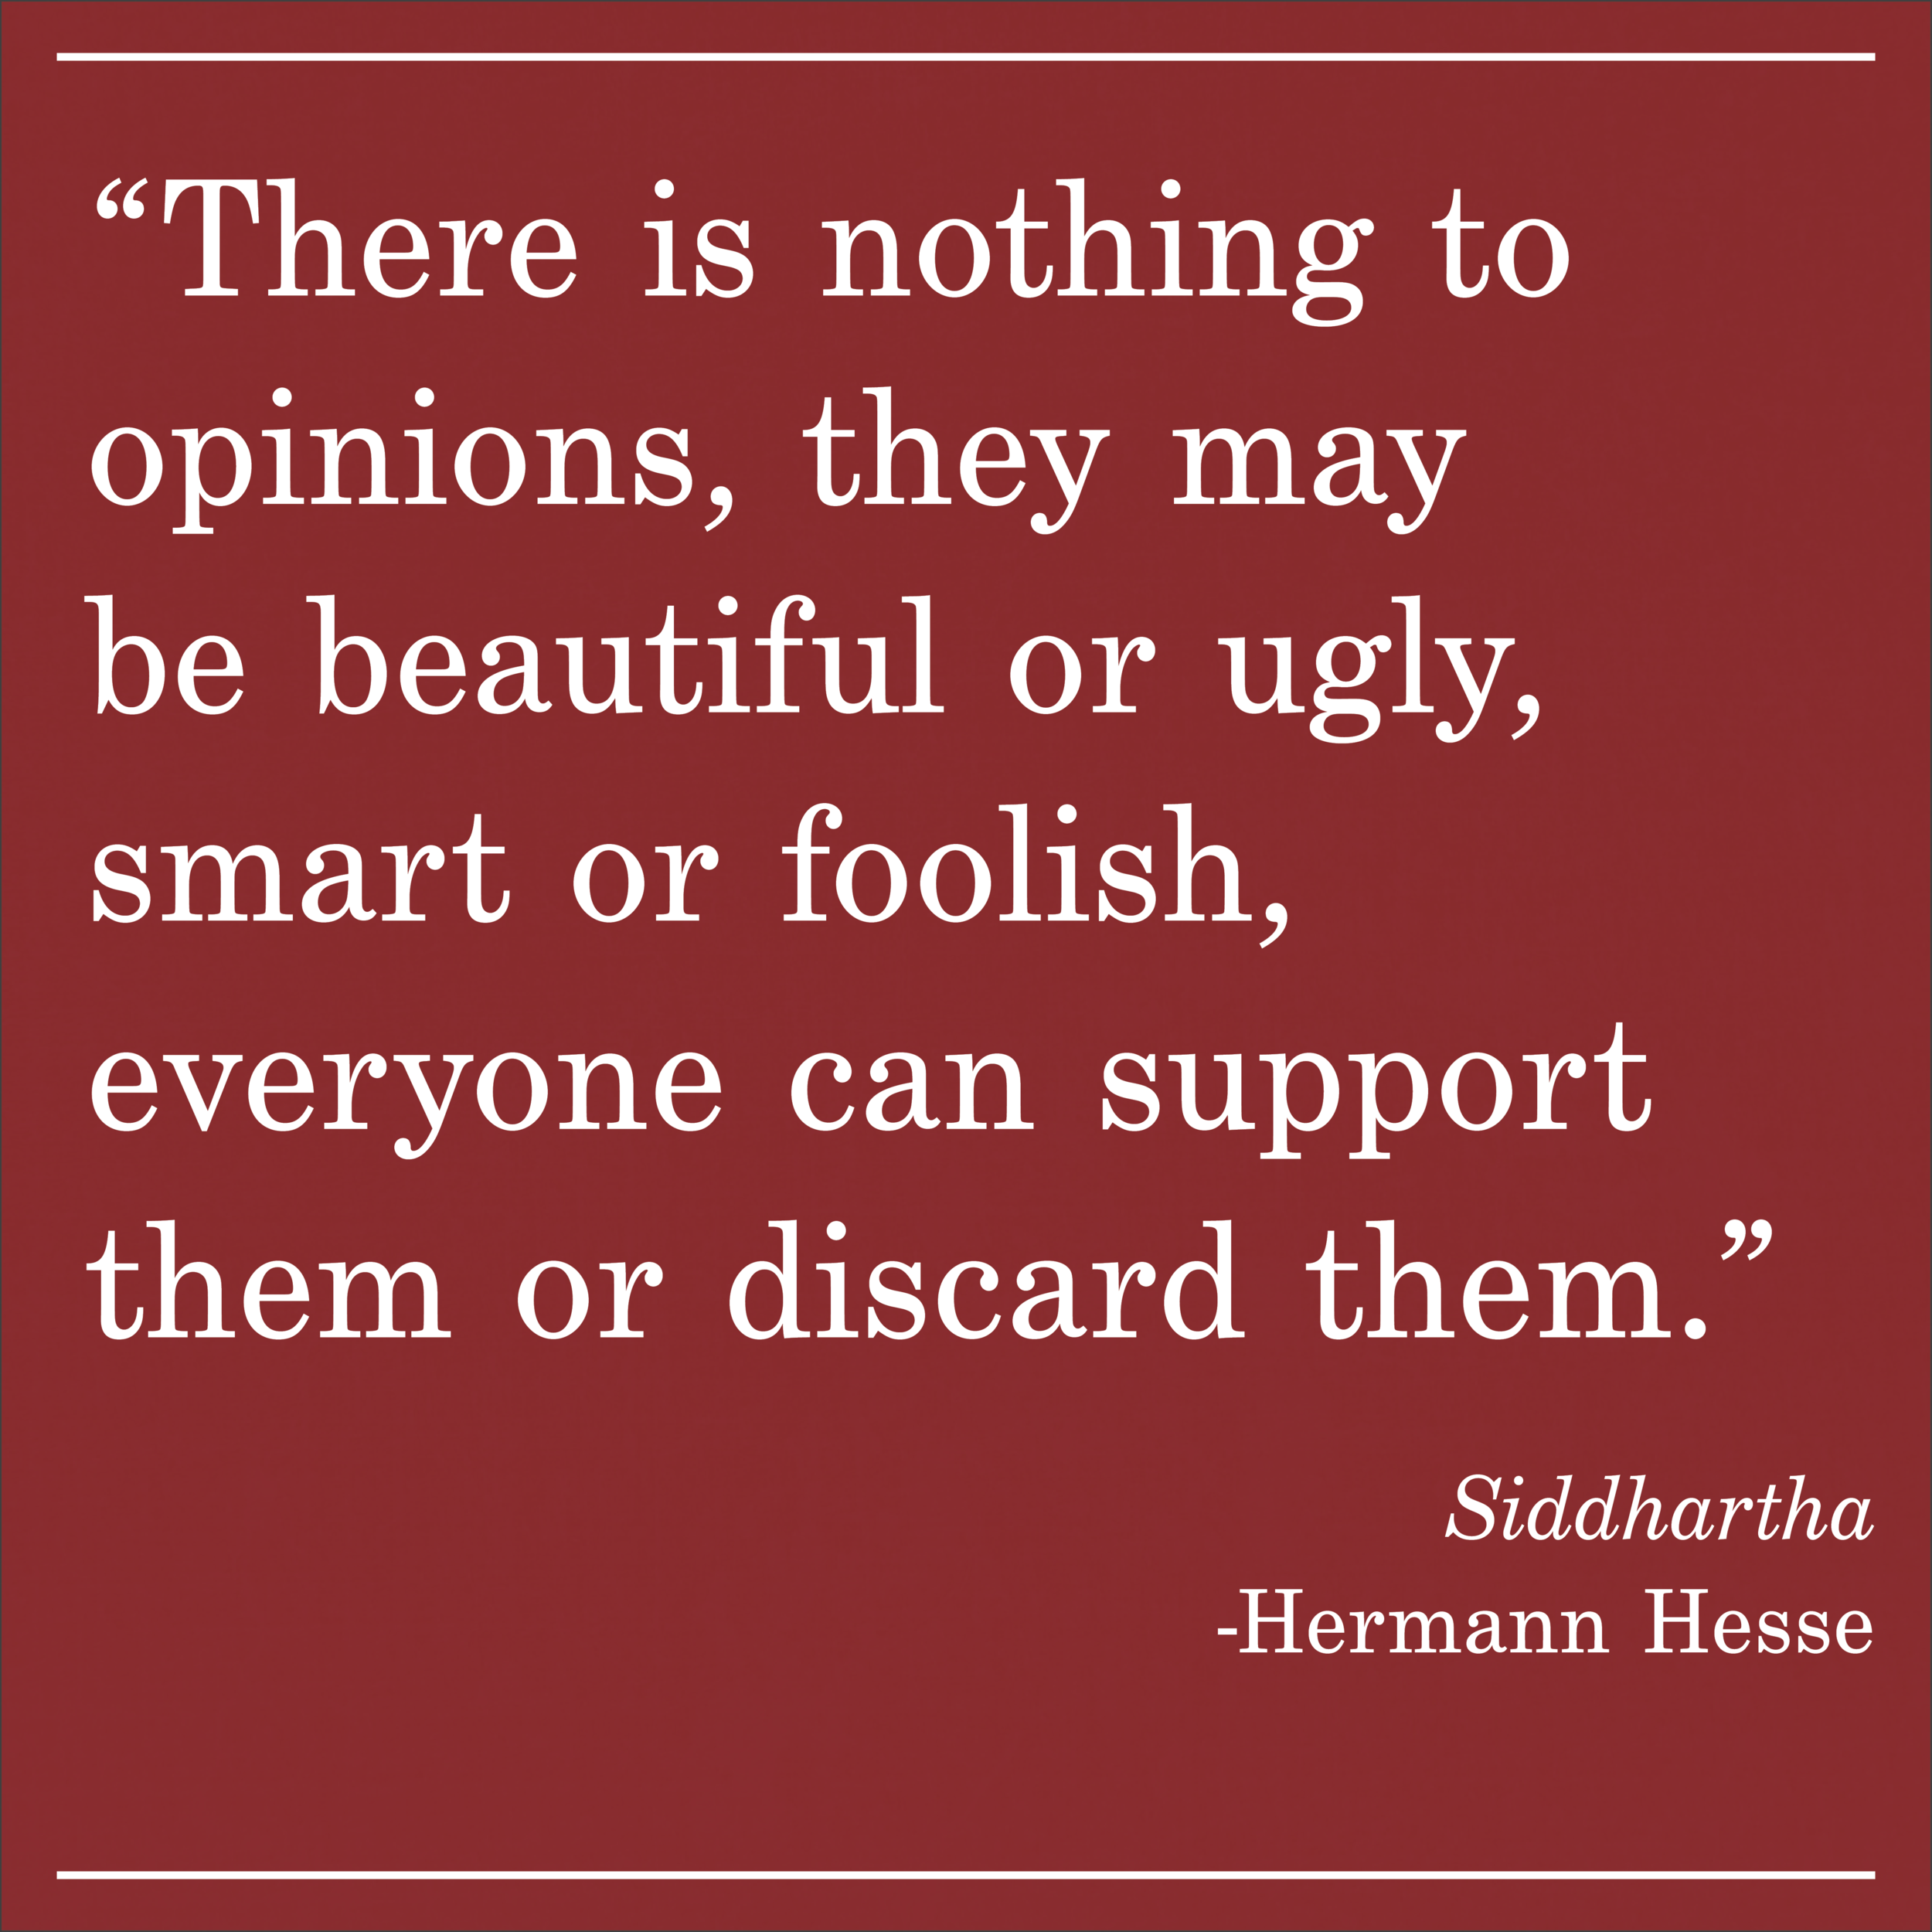 Daily Quote Siddhartha Hermann Hesse